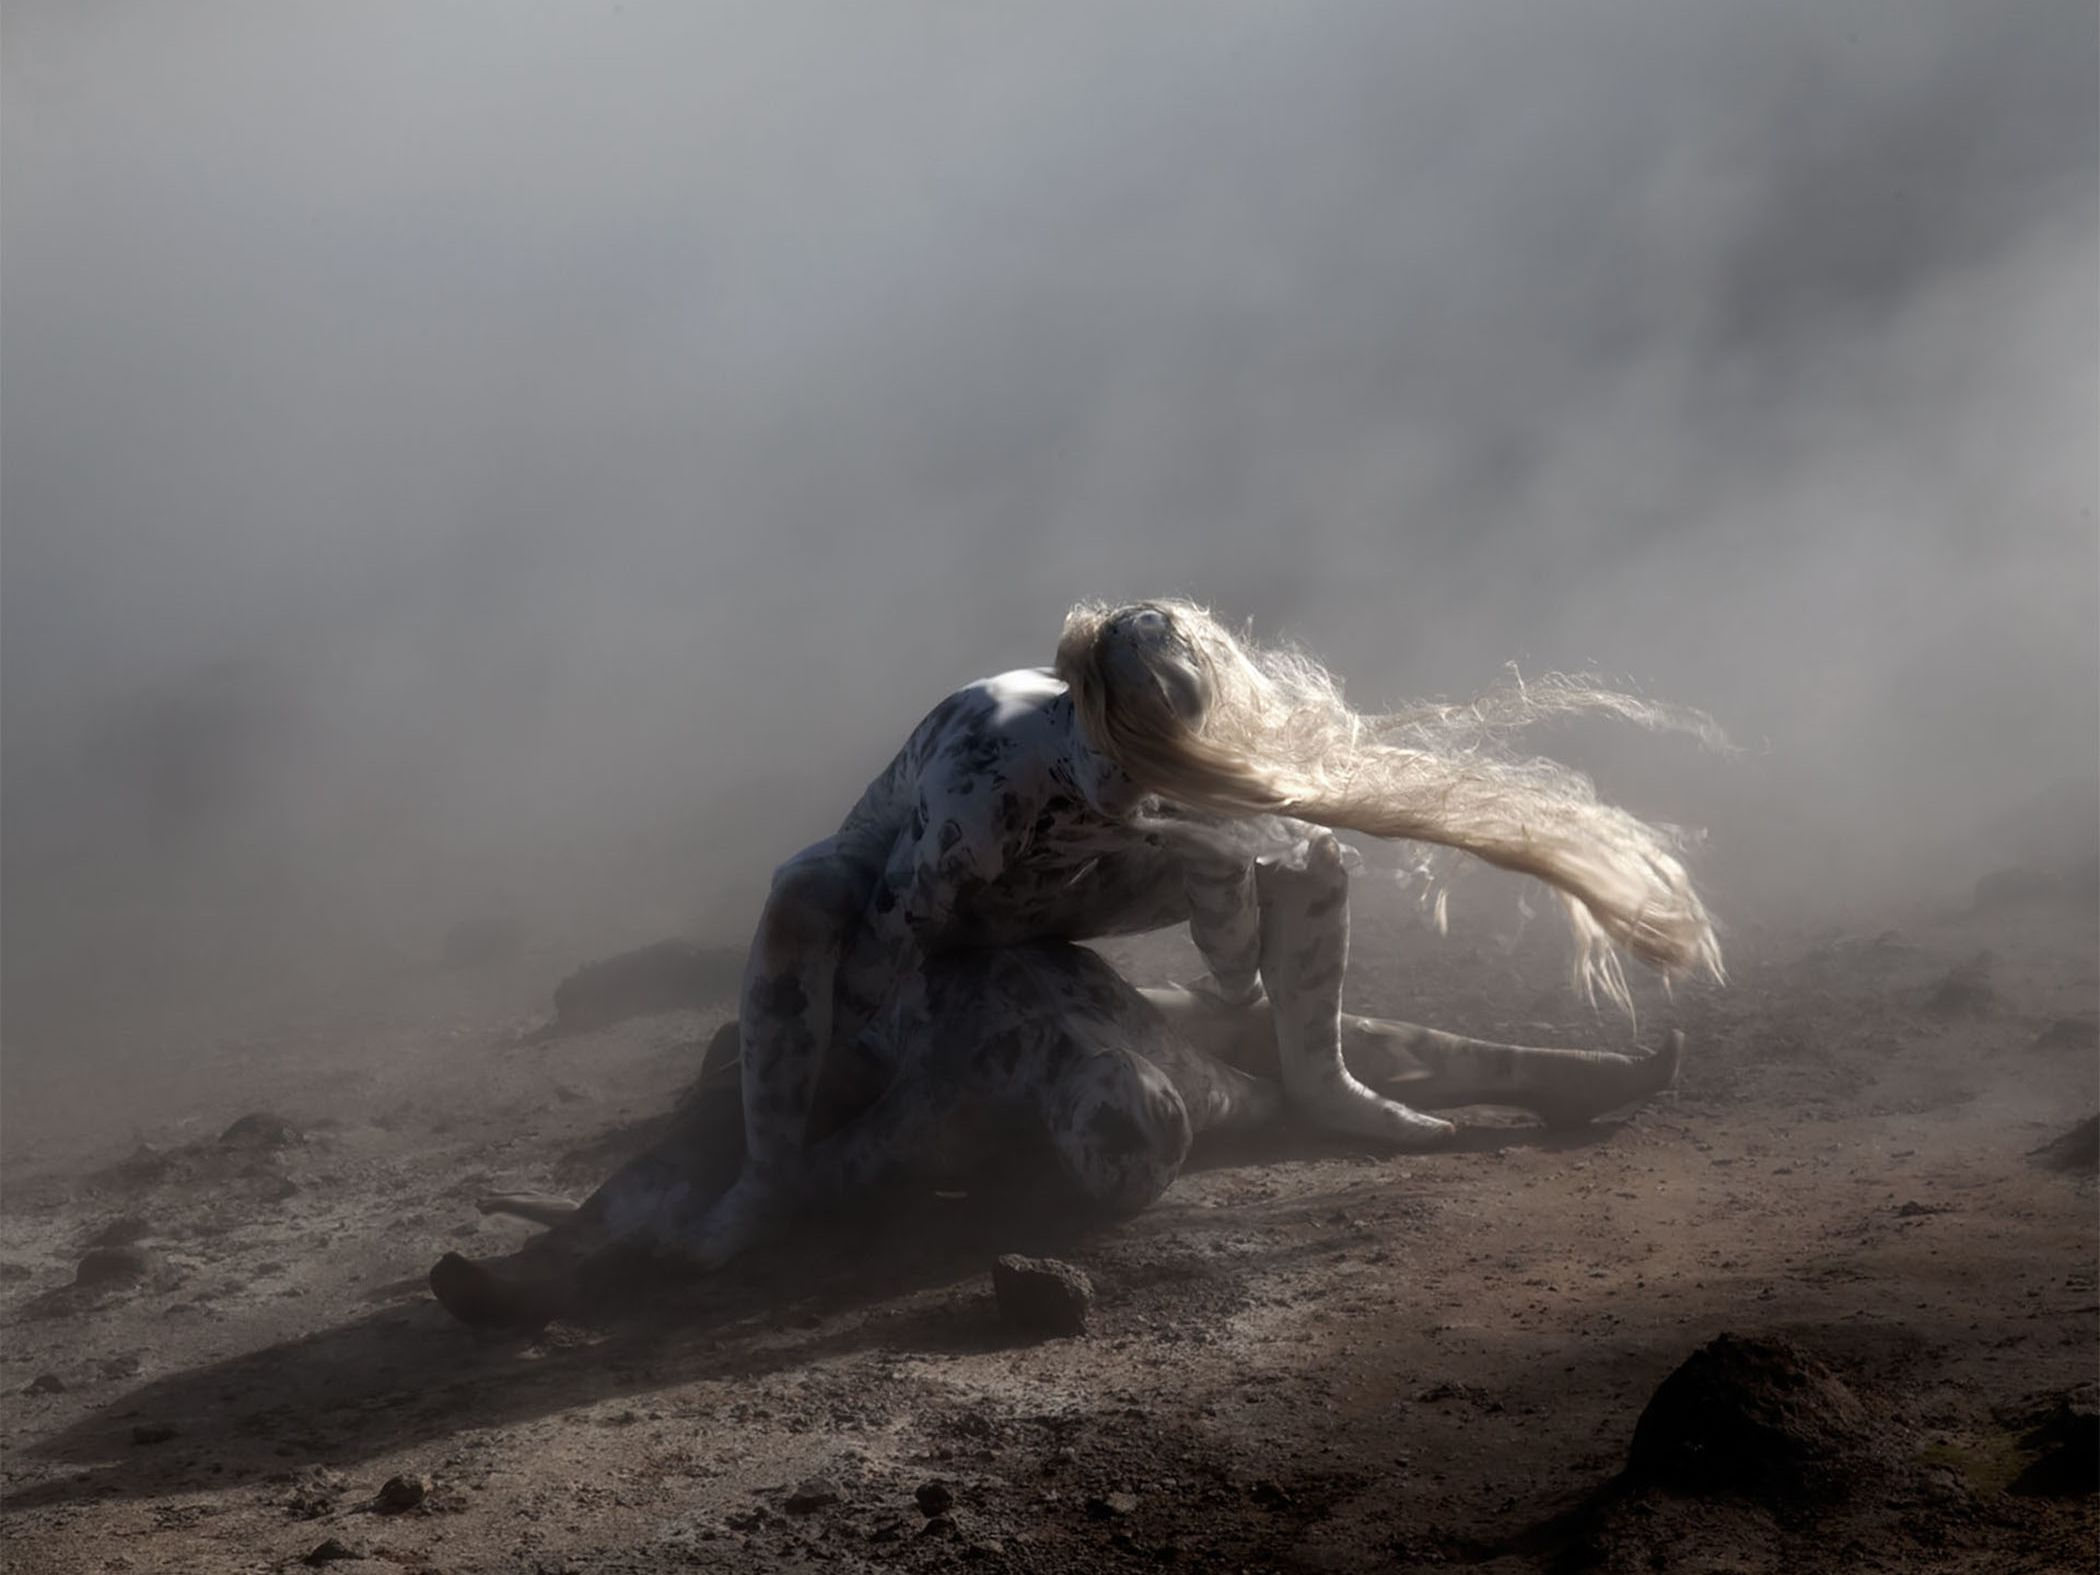 Photo from Once, a series by Beverley Carruthers, which features a shrouded figure on a misty moor.